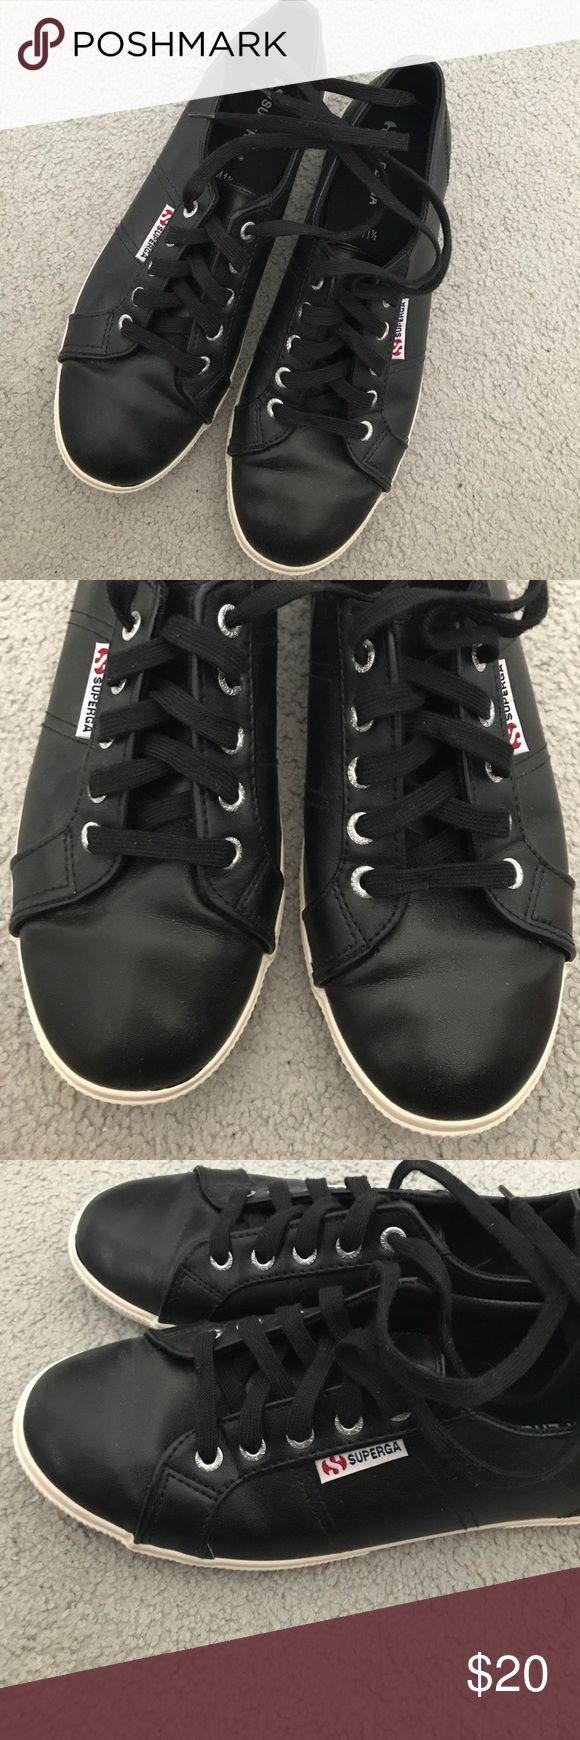 Superga Black Sneakers Tennis Shoes 10 Worn once, excellent condition. From Target. Canvas lining, rubber outside. Superga Shoes Sneakers